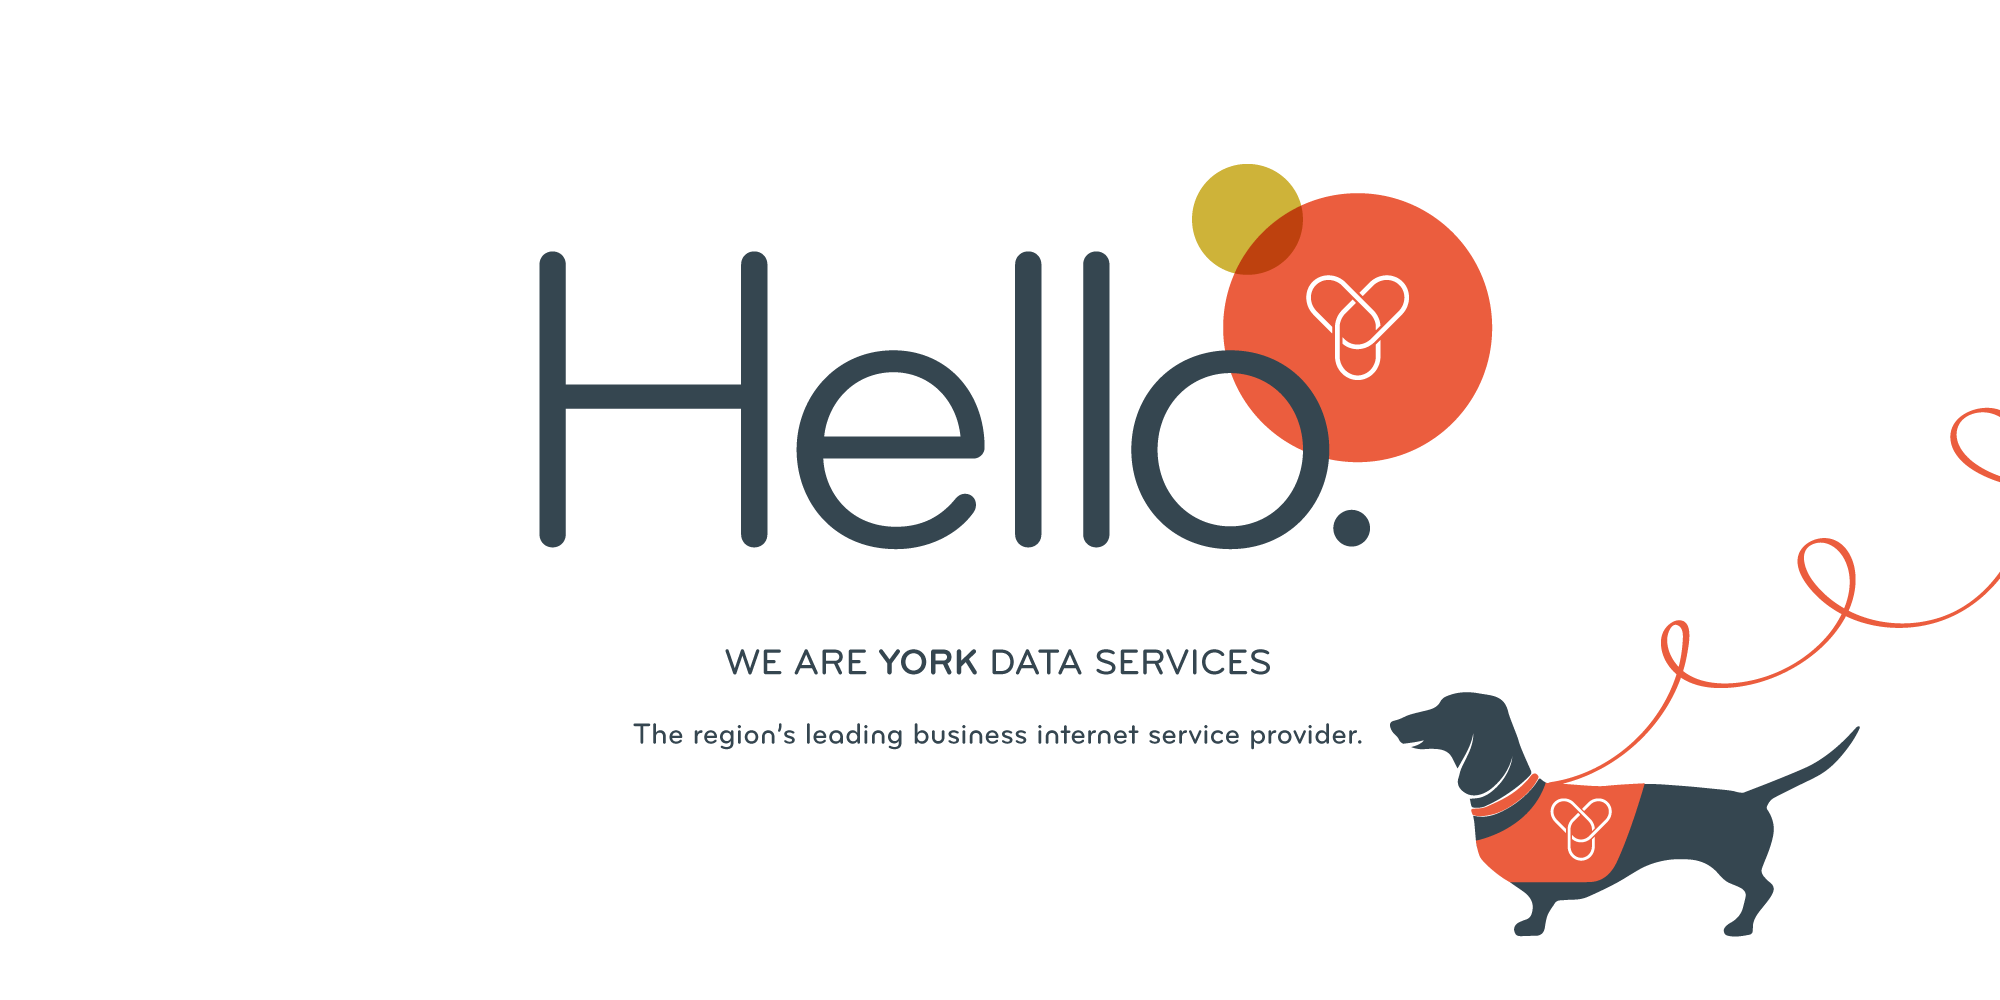 We are York Data Services. The region's leading business internet service provider.